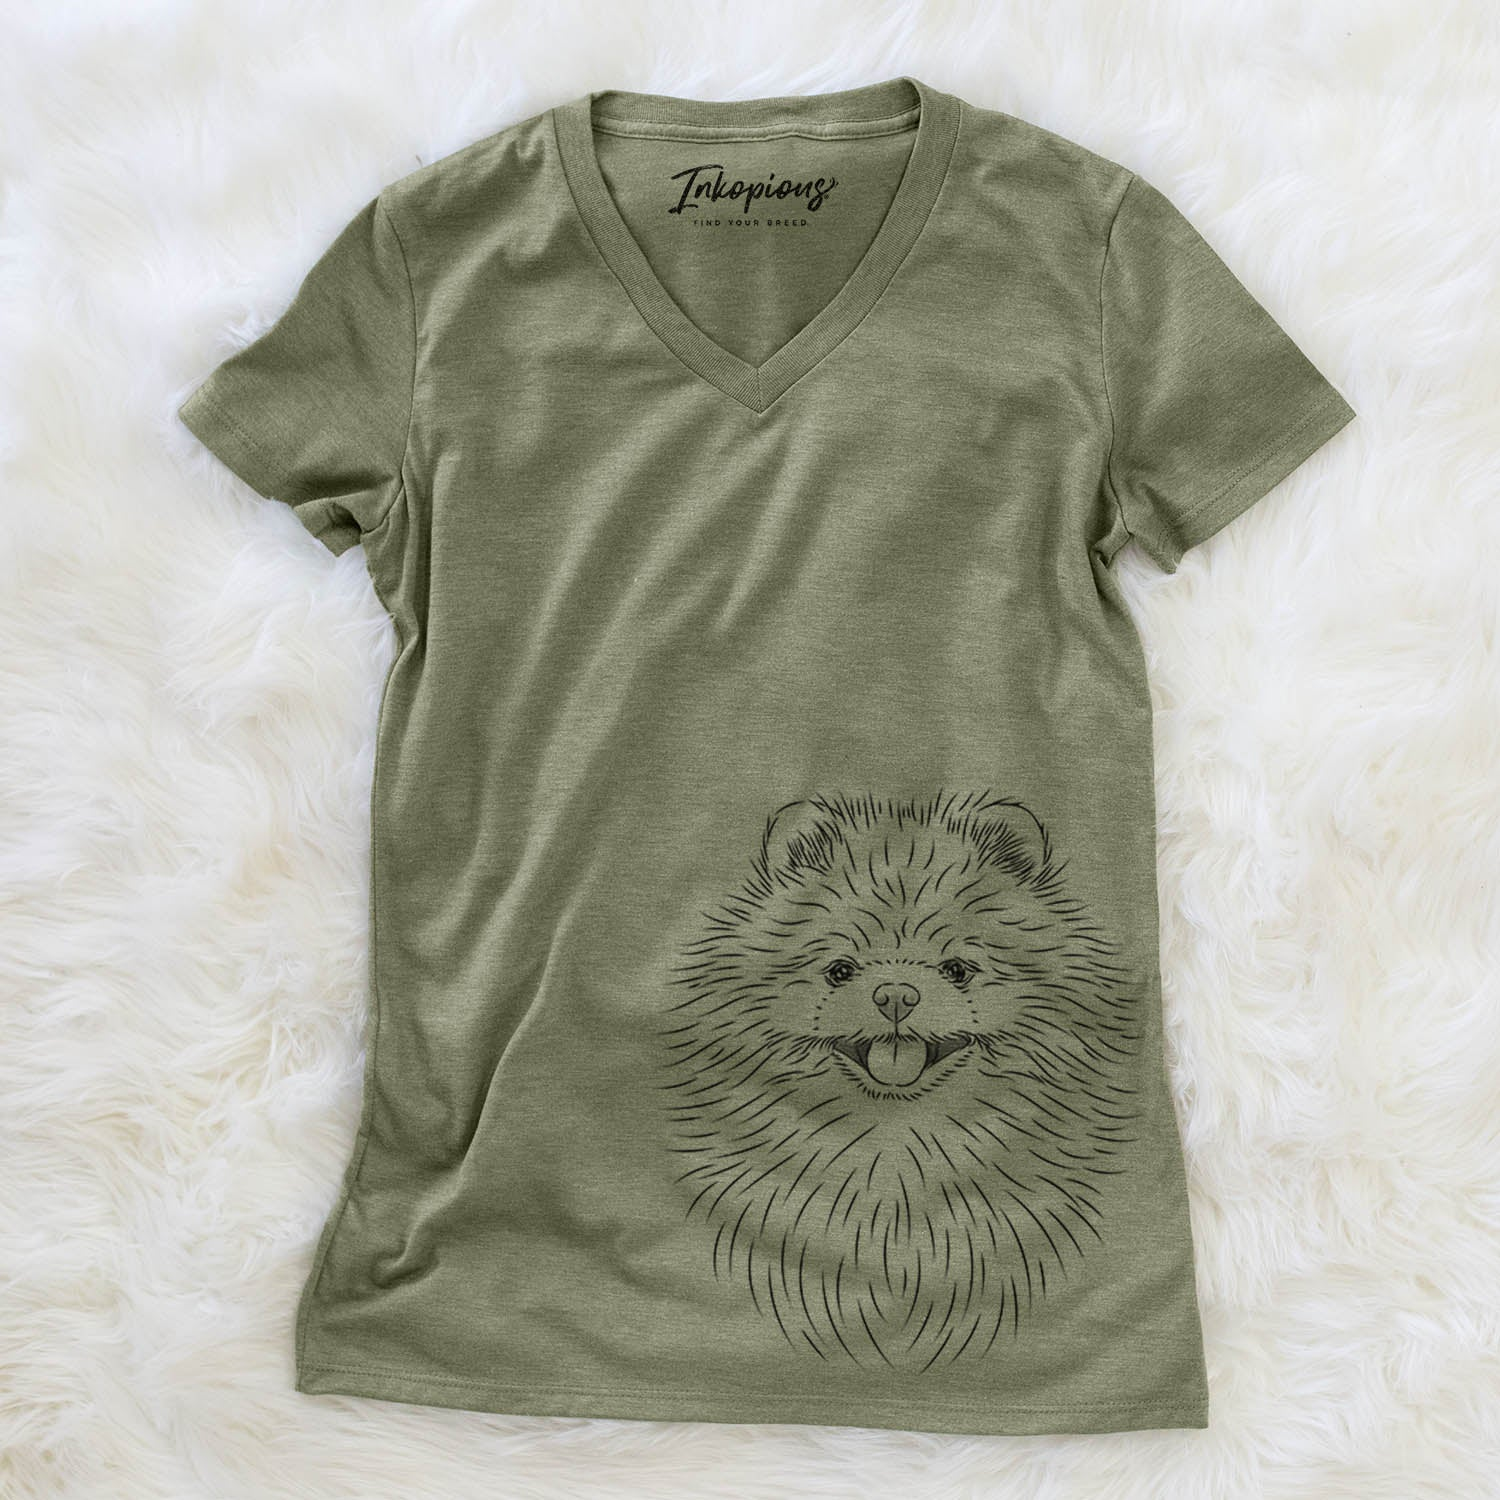 Pirro the Pomeranian - Women's Modern Fit V-neck Shirt